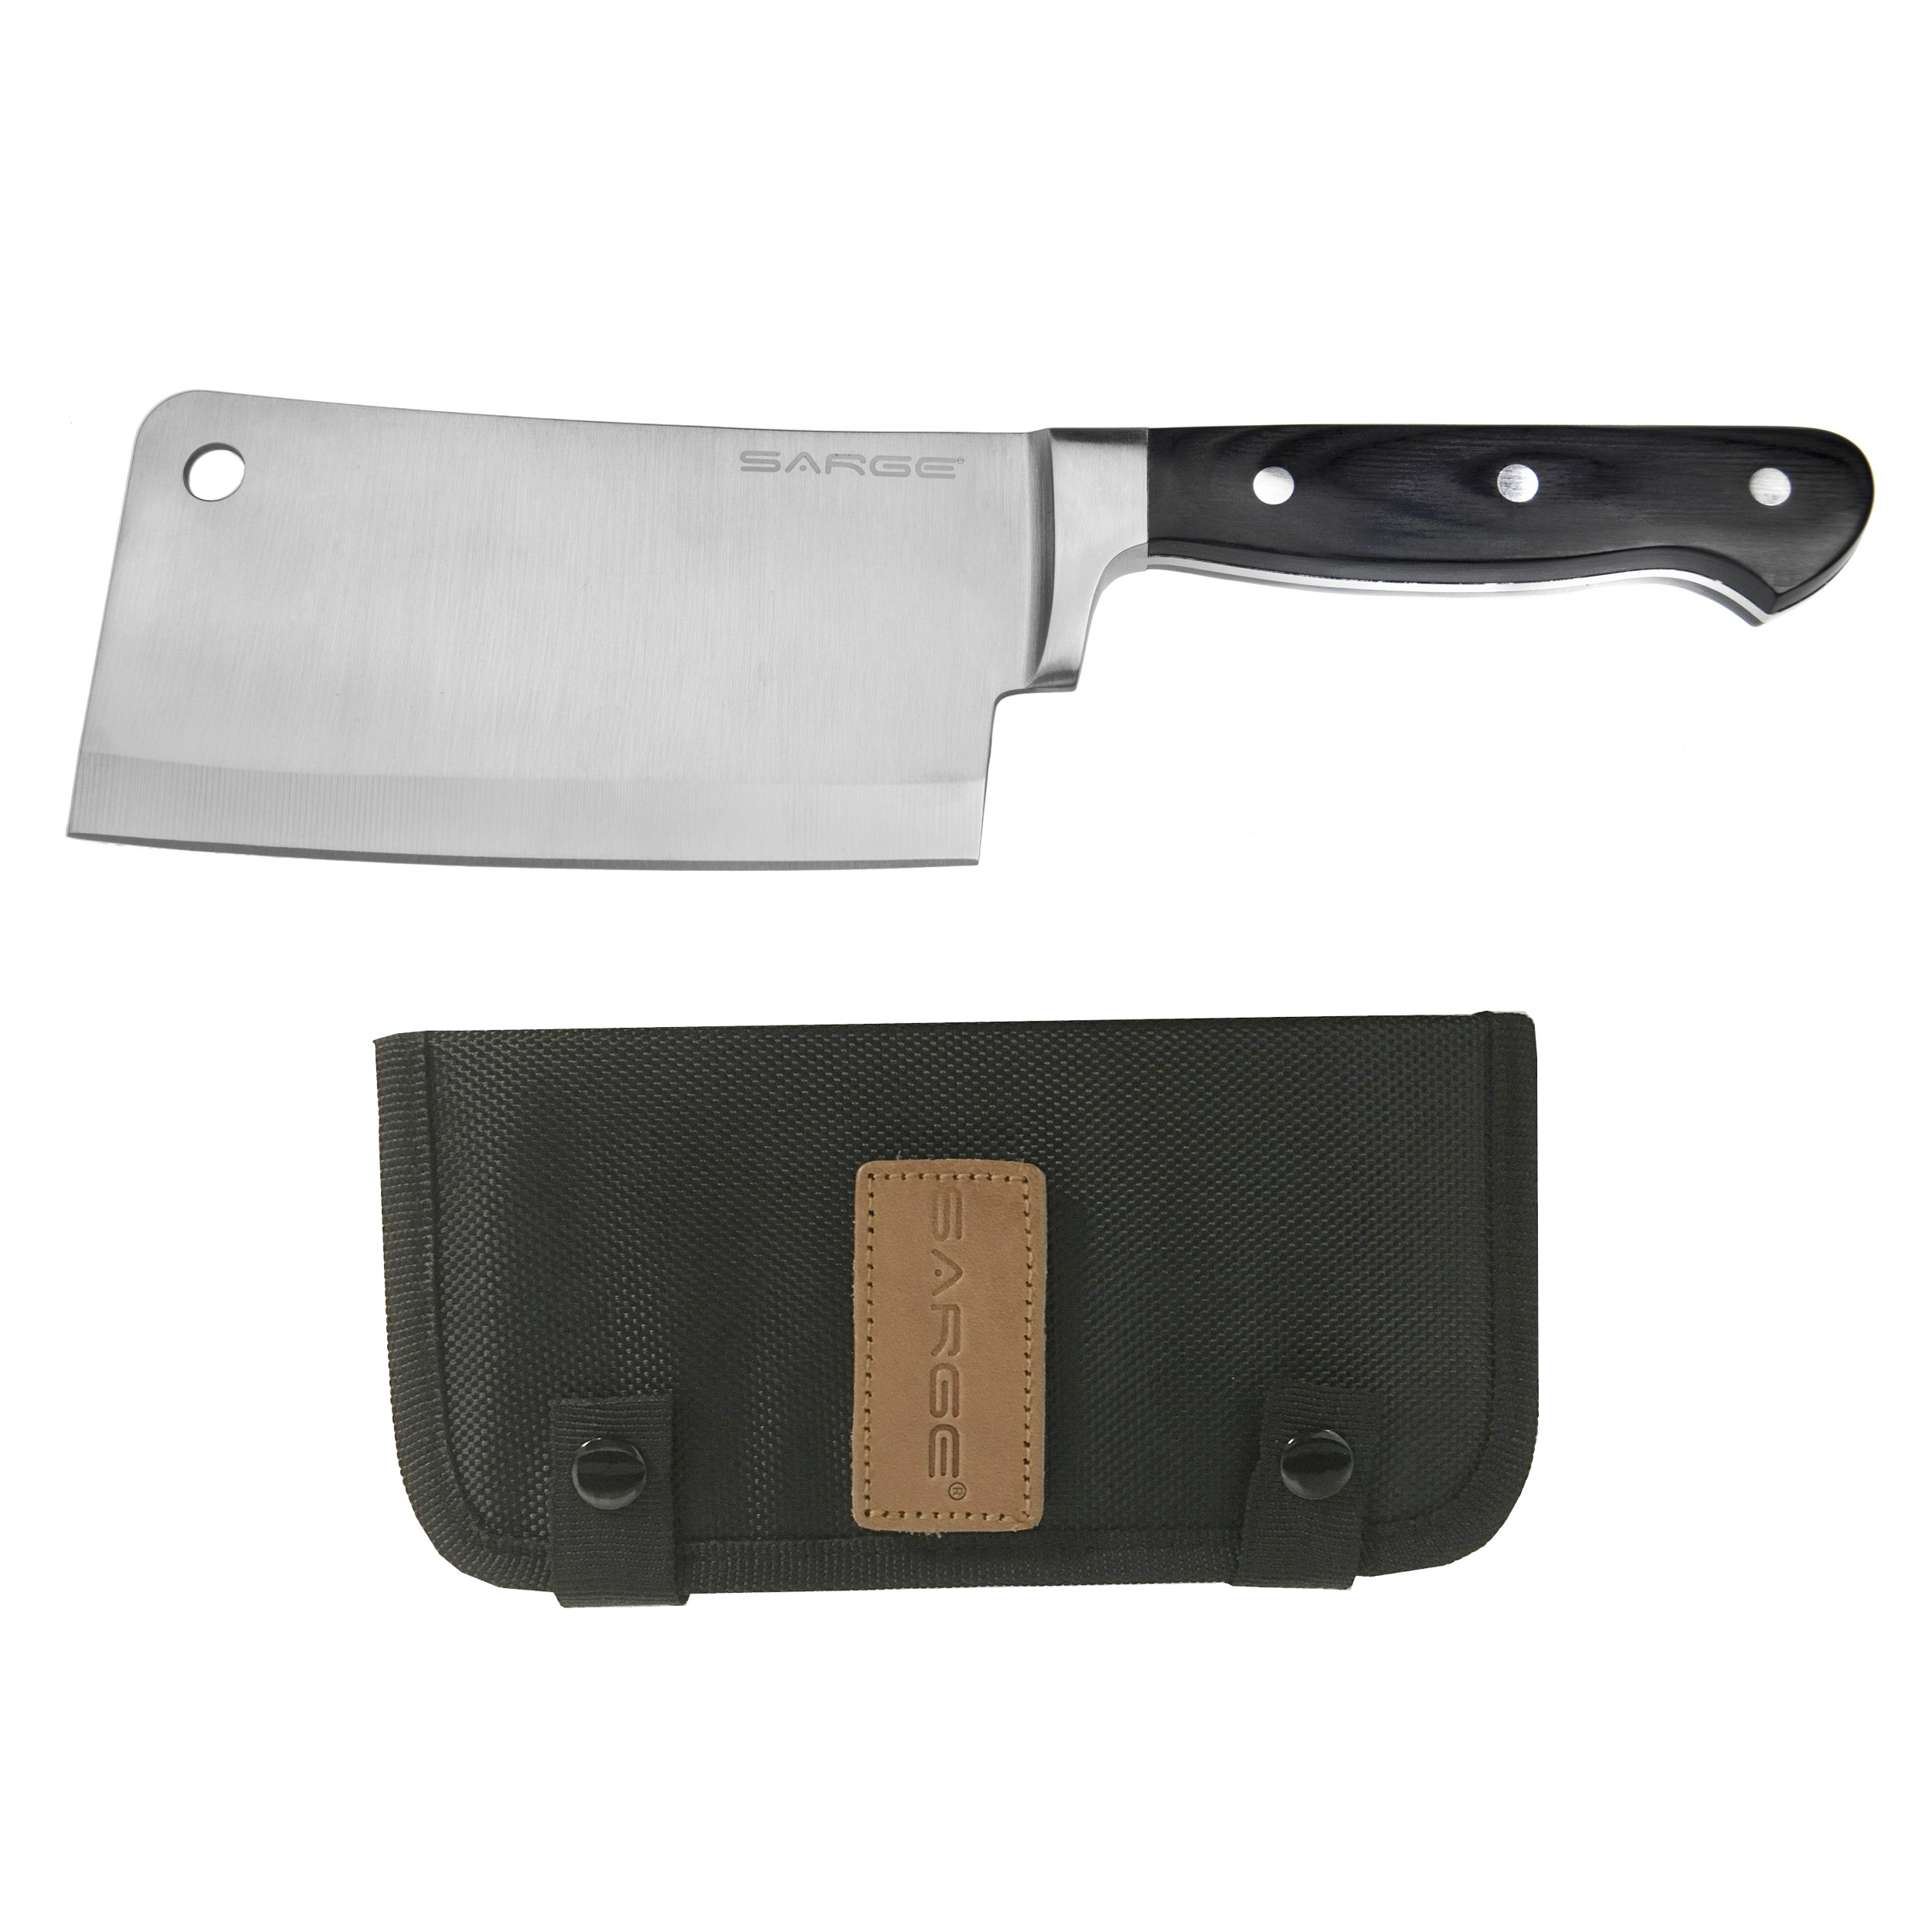 Chop - Cleaver with Sheath, Kitchen Grade Stainless Steel 6-1/4